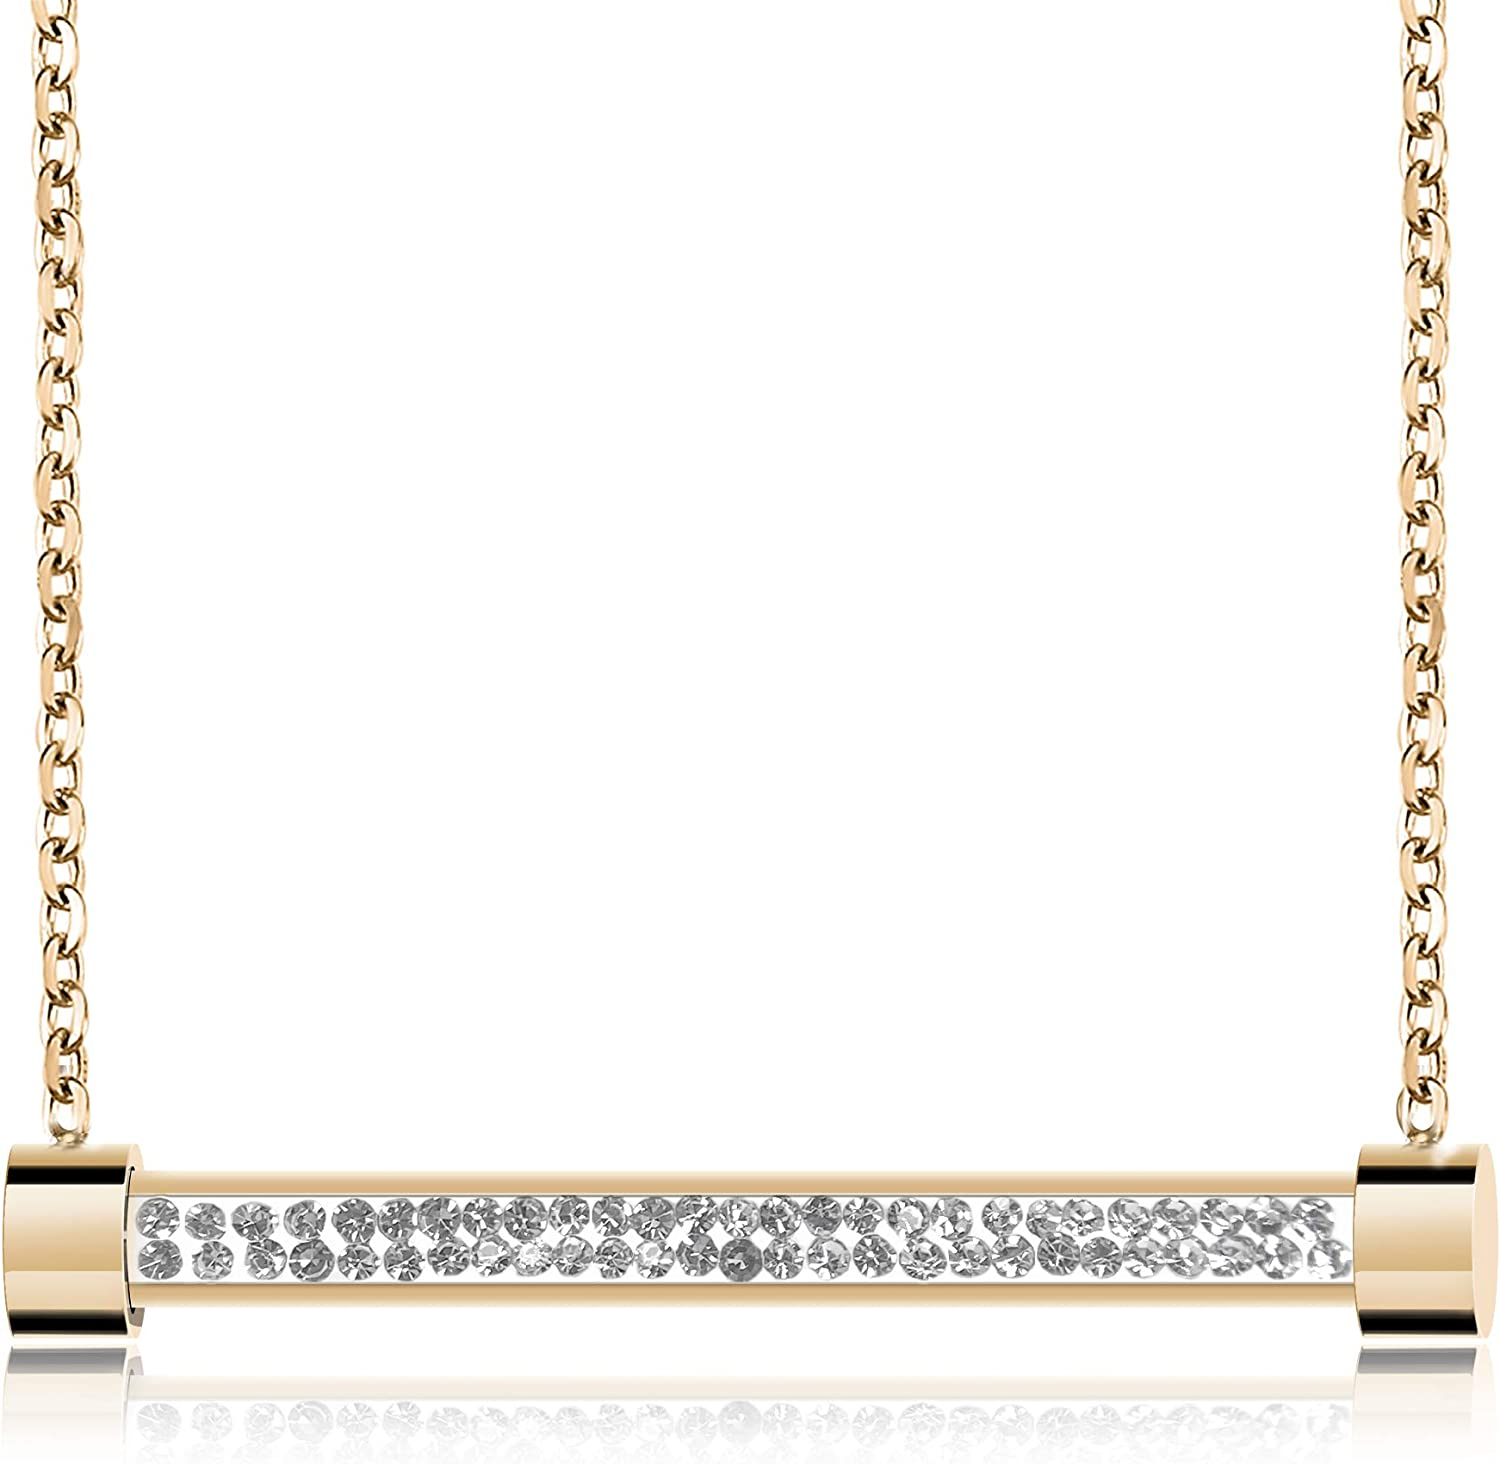 Frwiskp Finally popular brand Pendant Max 78% OFF Necklace - 18K Sh Plated Gold with Rose